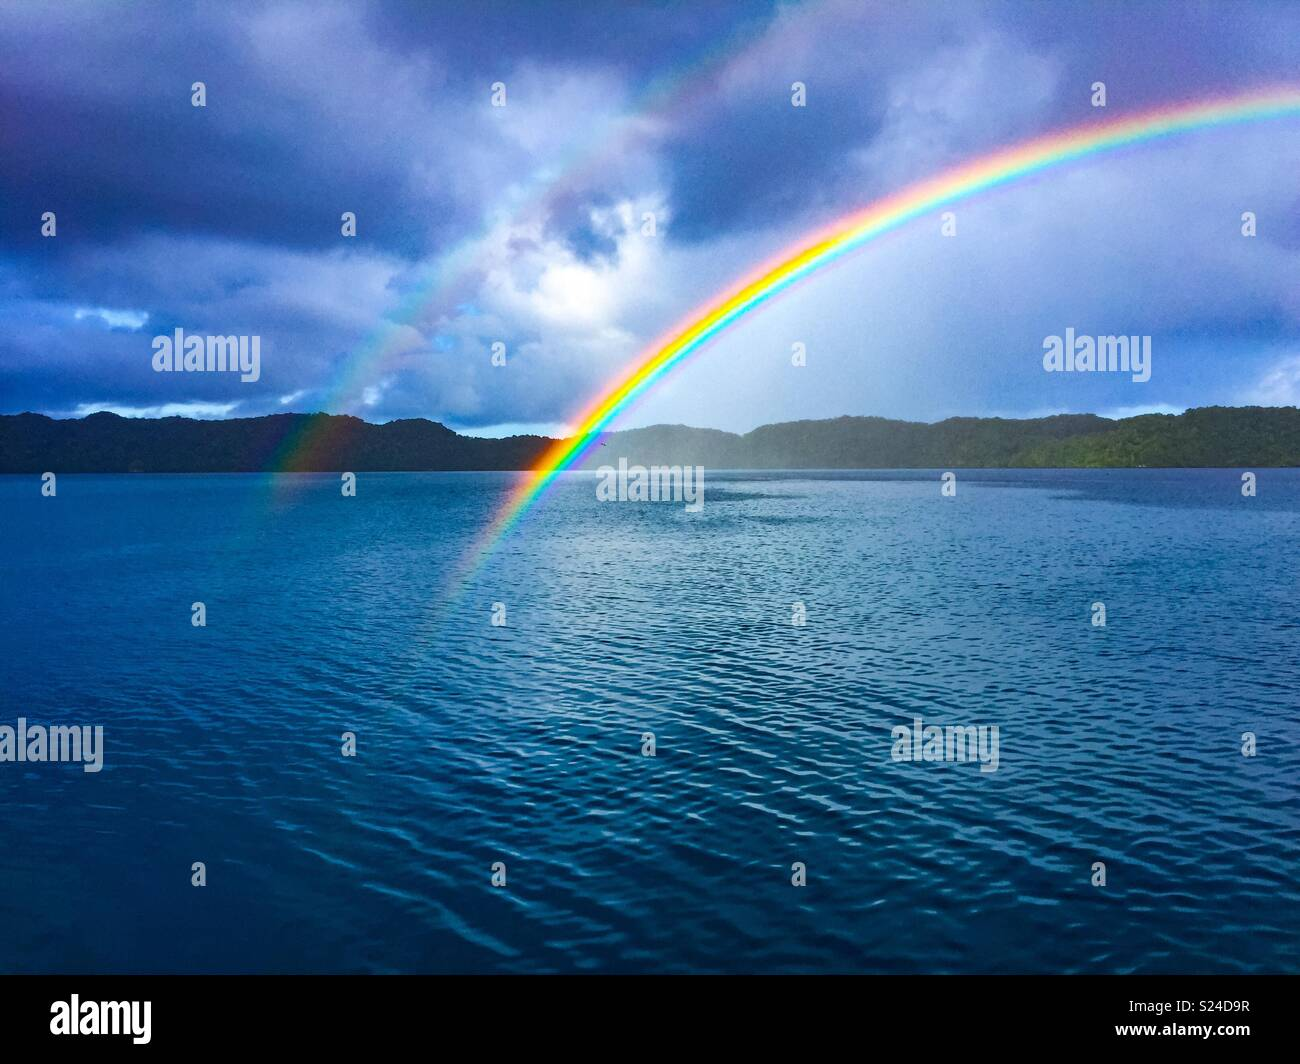 Twins rainbows rising from the lagoon after morning squall. In Palau - Stock Image